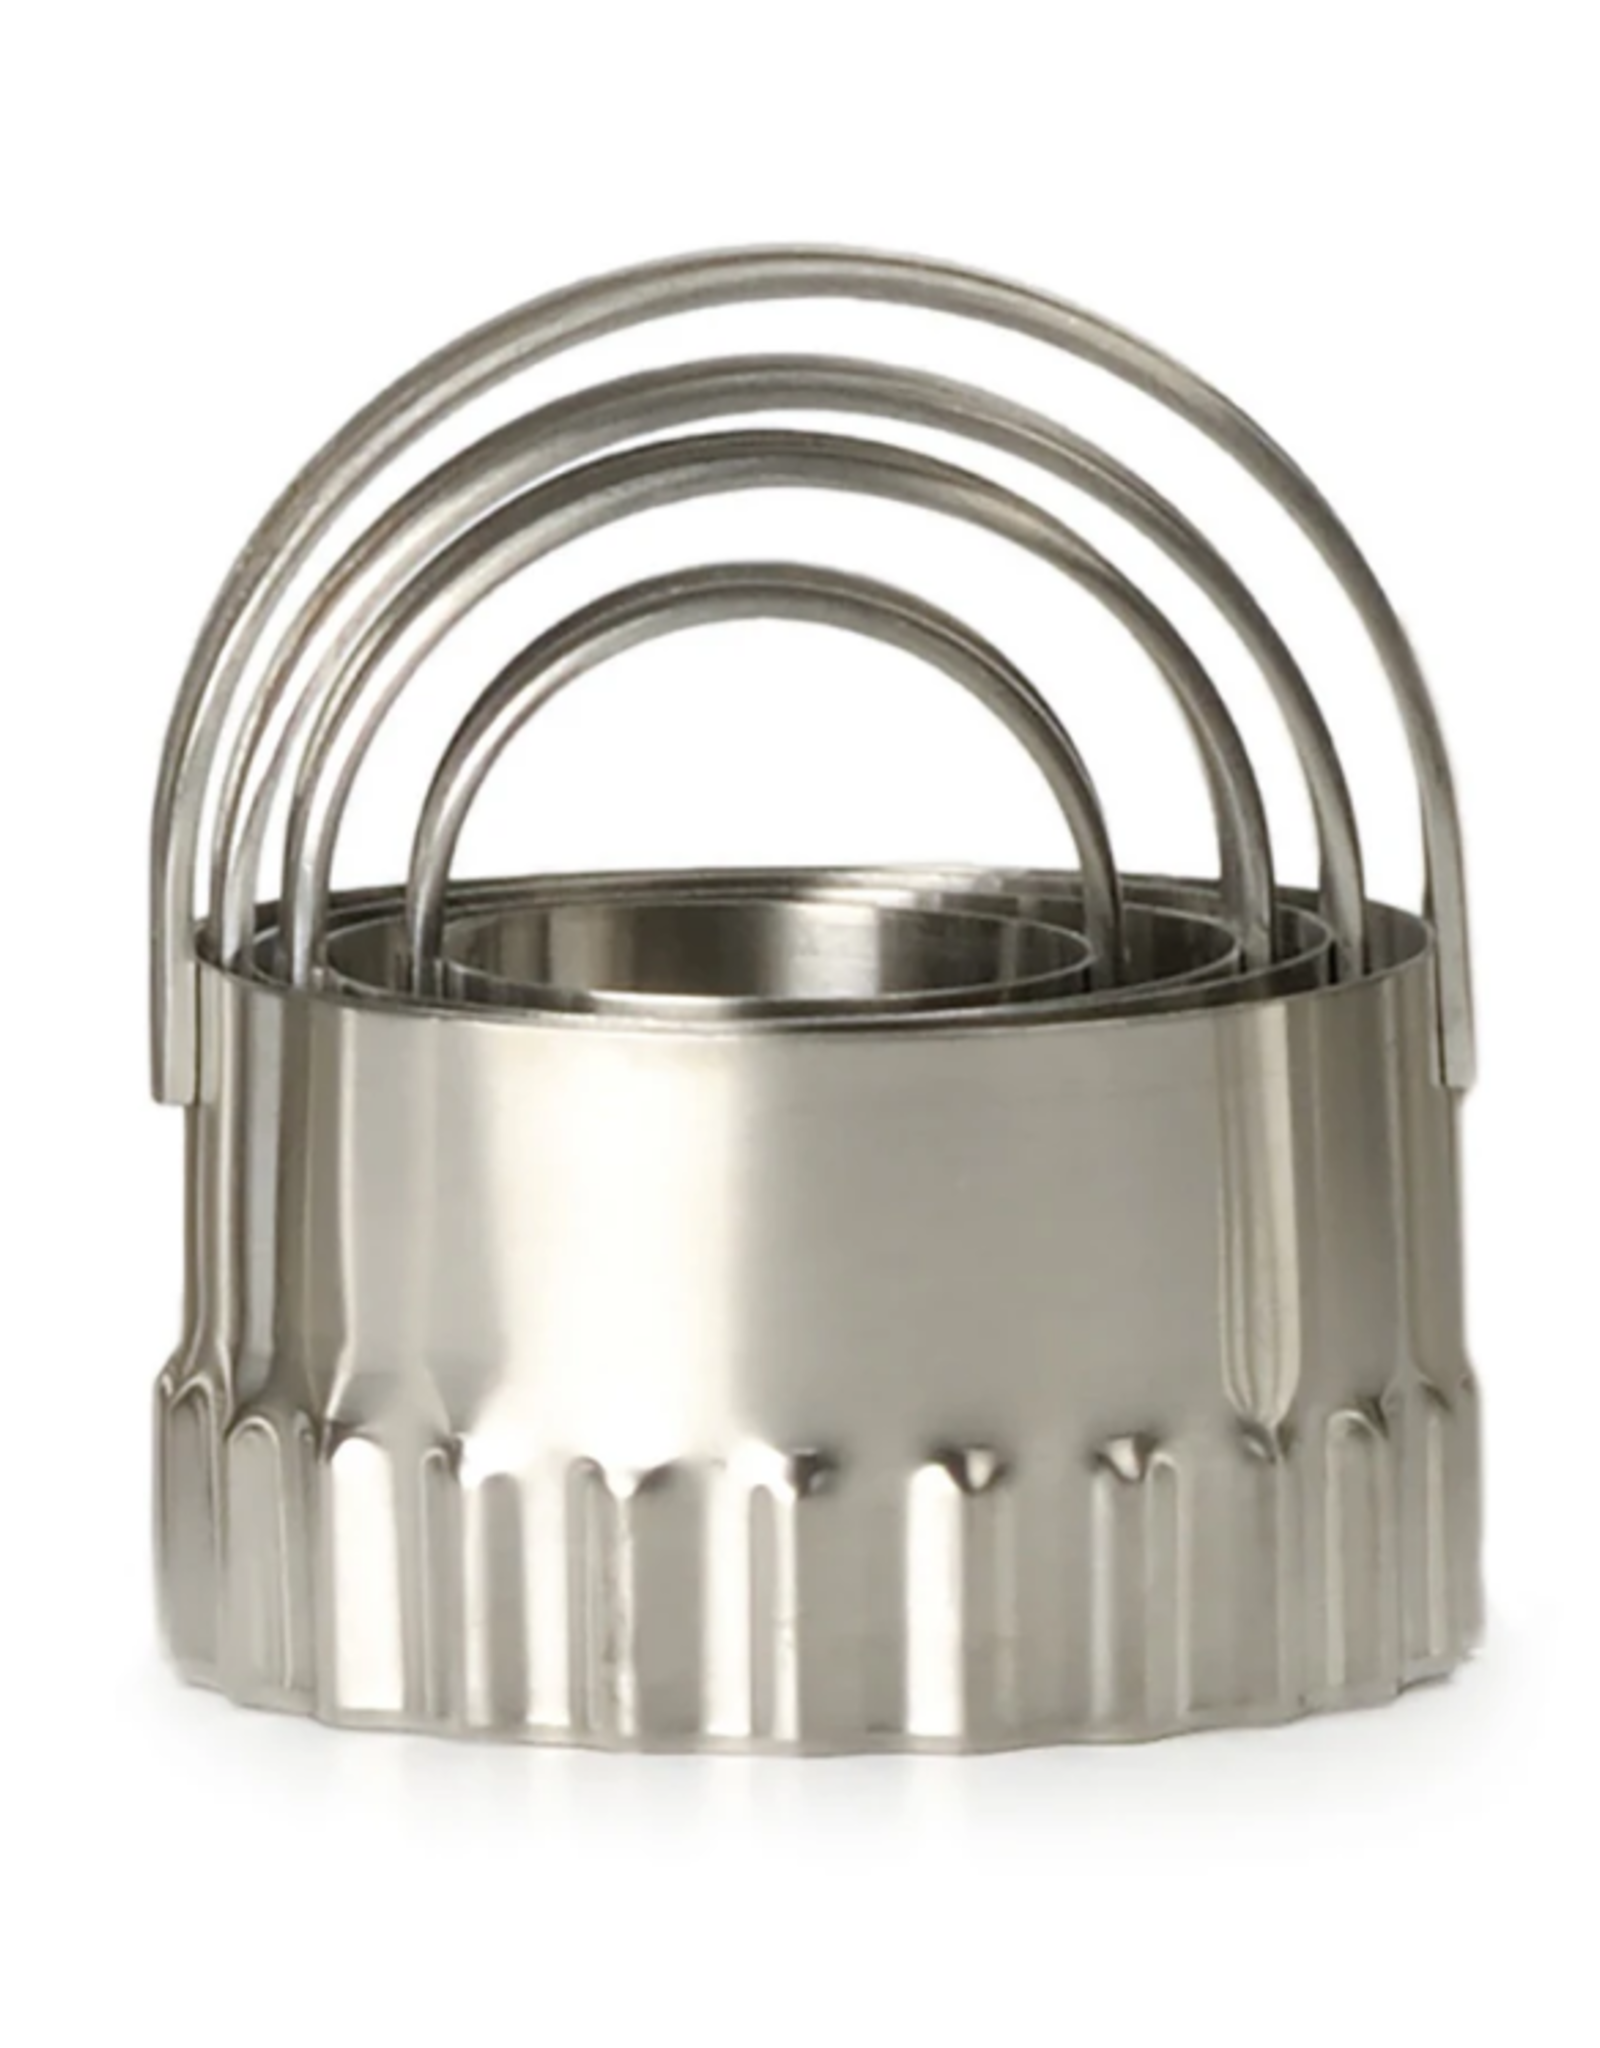 RSVP Biscuit Cutters, round rippled